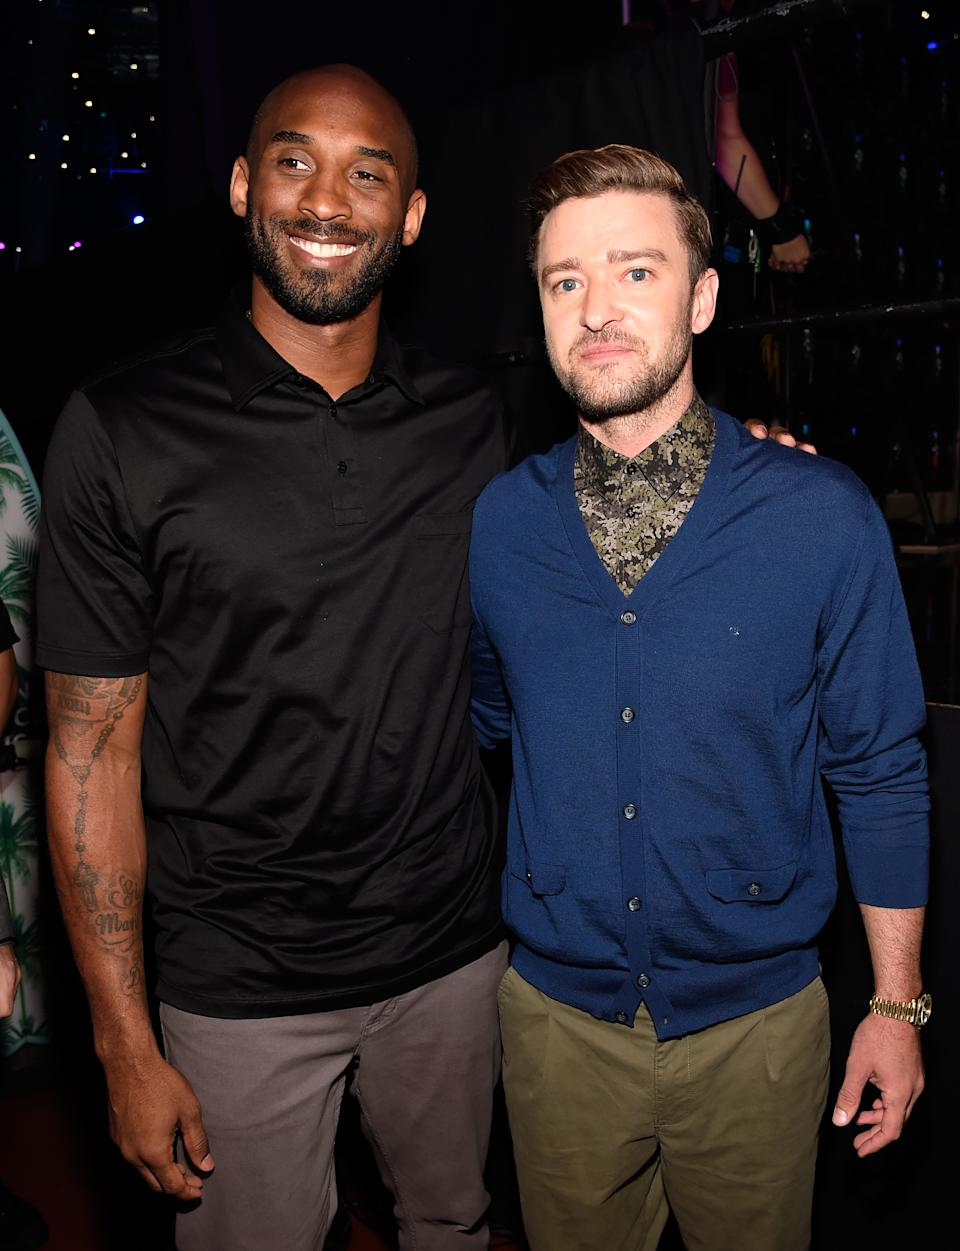 INGLEWOOD, CA - JULY 31:  Former NBA player Kobe Bryant (L) and recording artist Justin Timberlake attend the Teen Choice Awards 2016 at The Forum on July 31, 2016 in Inglewood, California.  (Photo by Kevin Mazur/Fox/Getty Images for Fox)